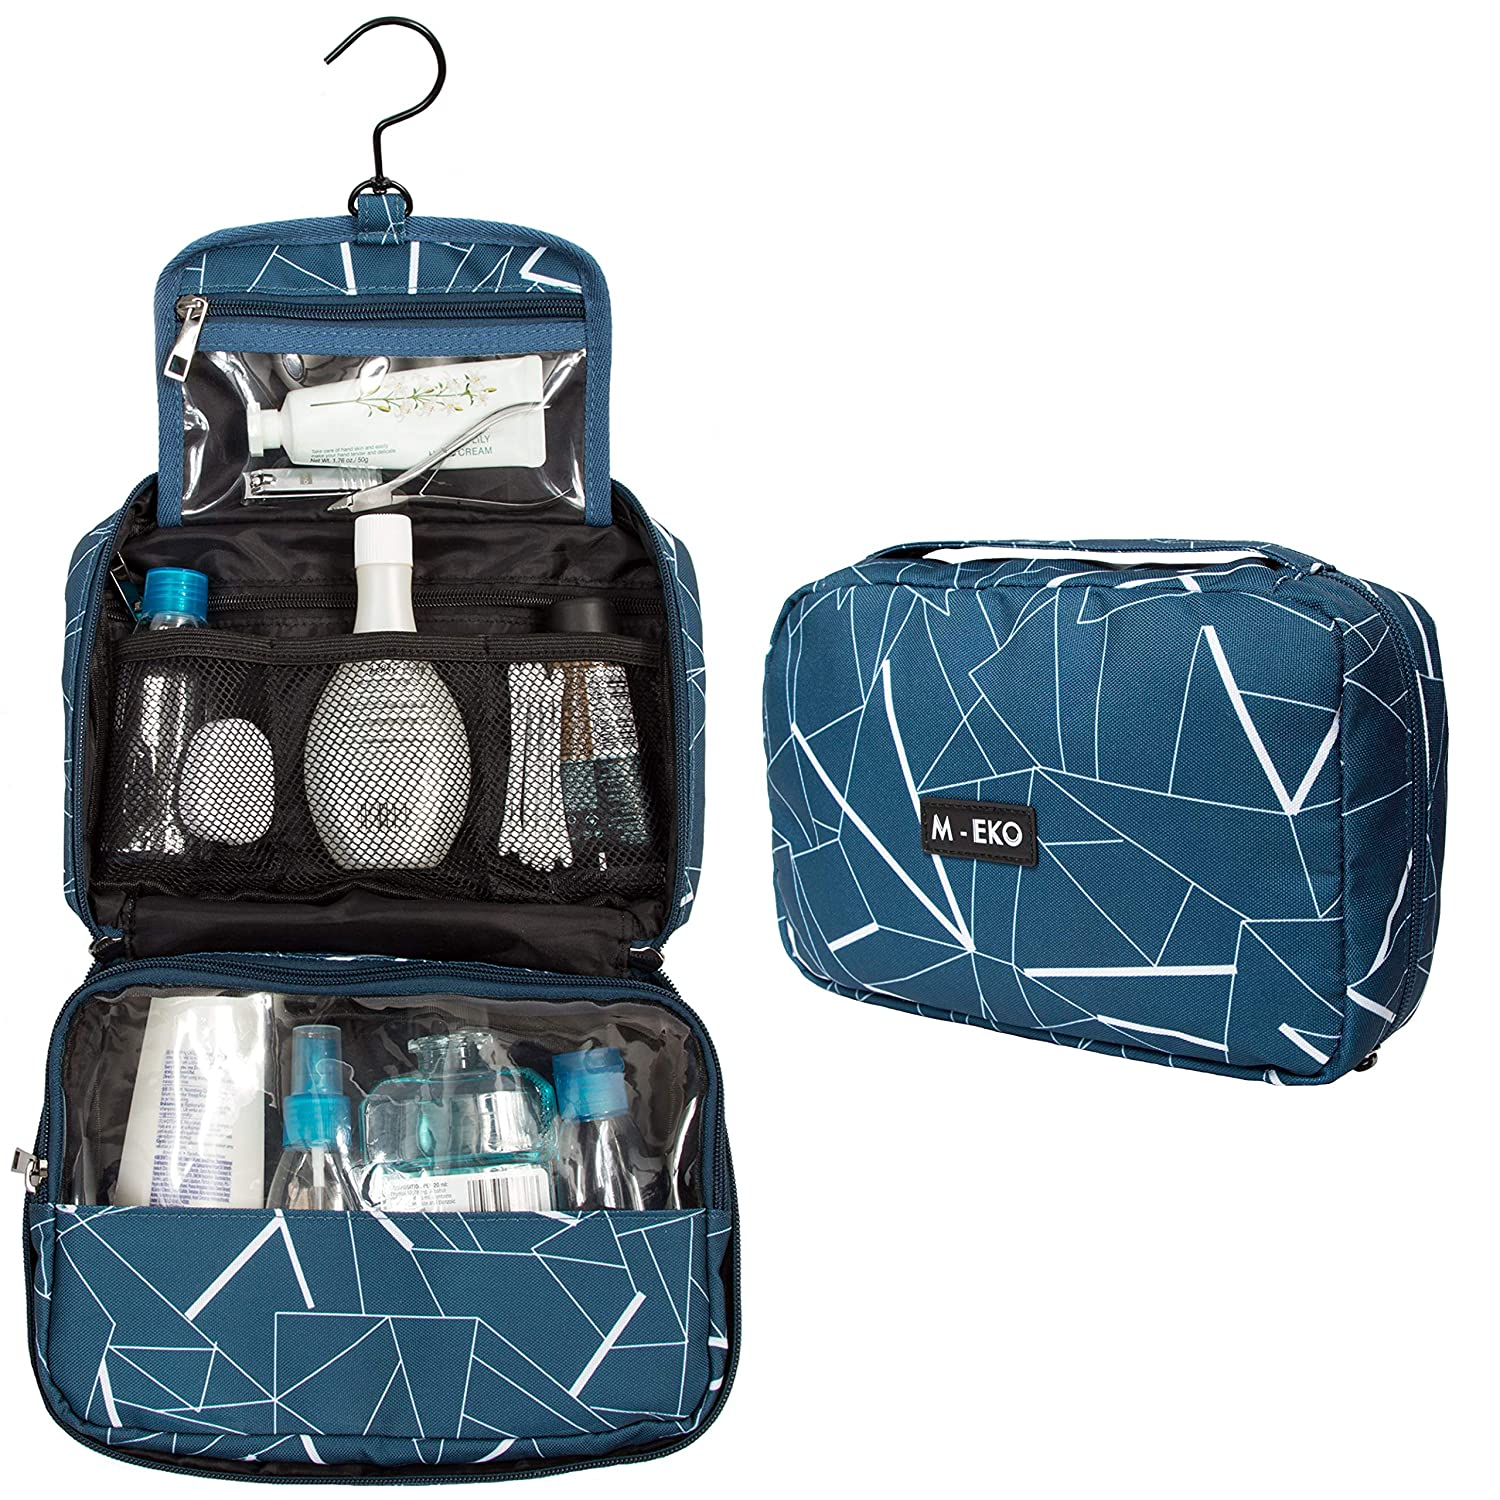 Large Hanging Toiletry, Cosmetic And Travel Bag For Men and Women Made Of Water Resistant Polyester With A Quality Zipper And 360 Swivel Hook